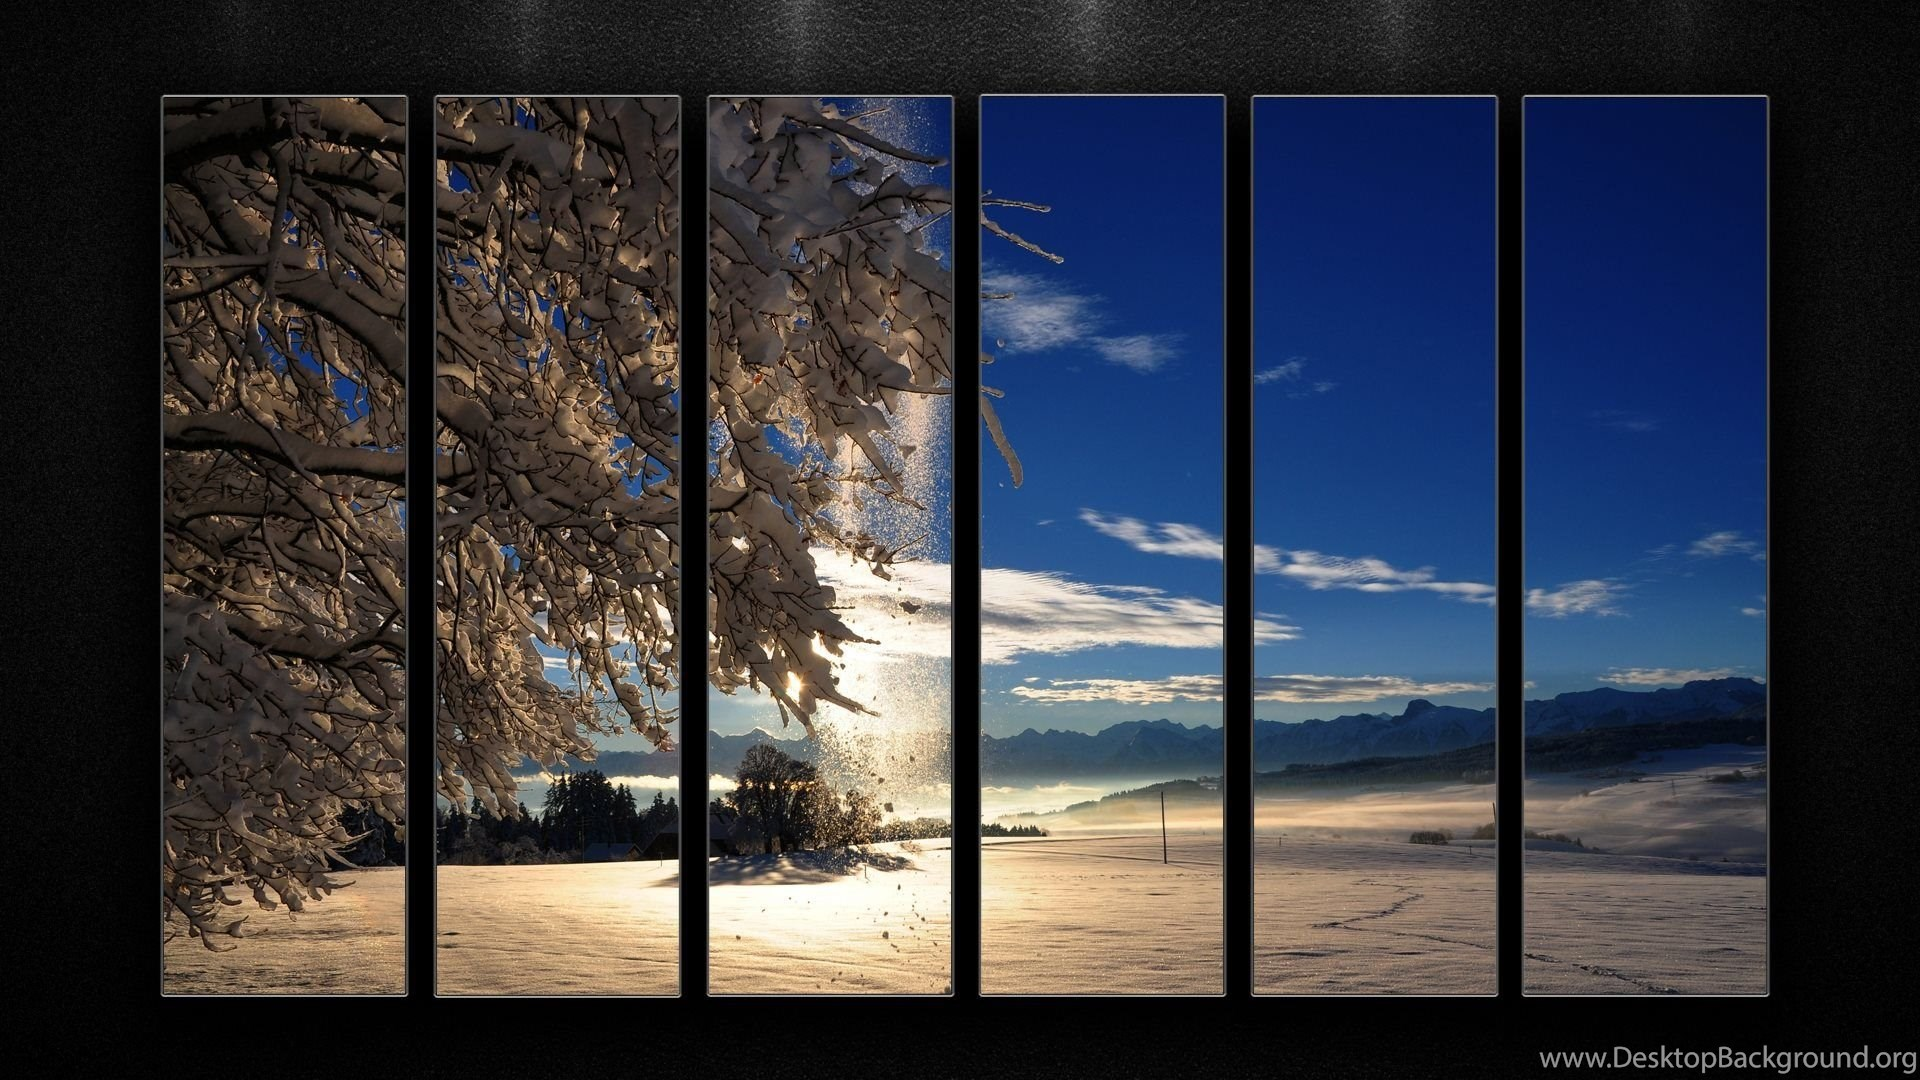 Hd Background Wallpaper 800x600: Winter Chillout Remix Wallpapers :: HD Wallpapers Desktop